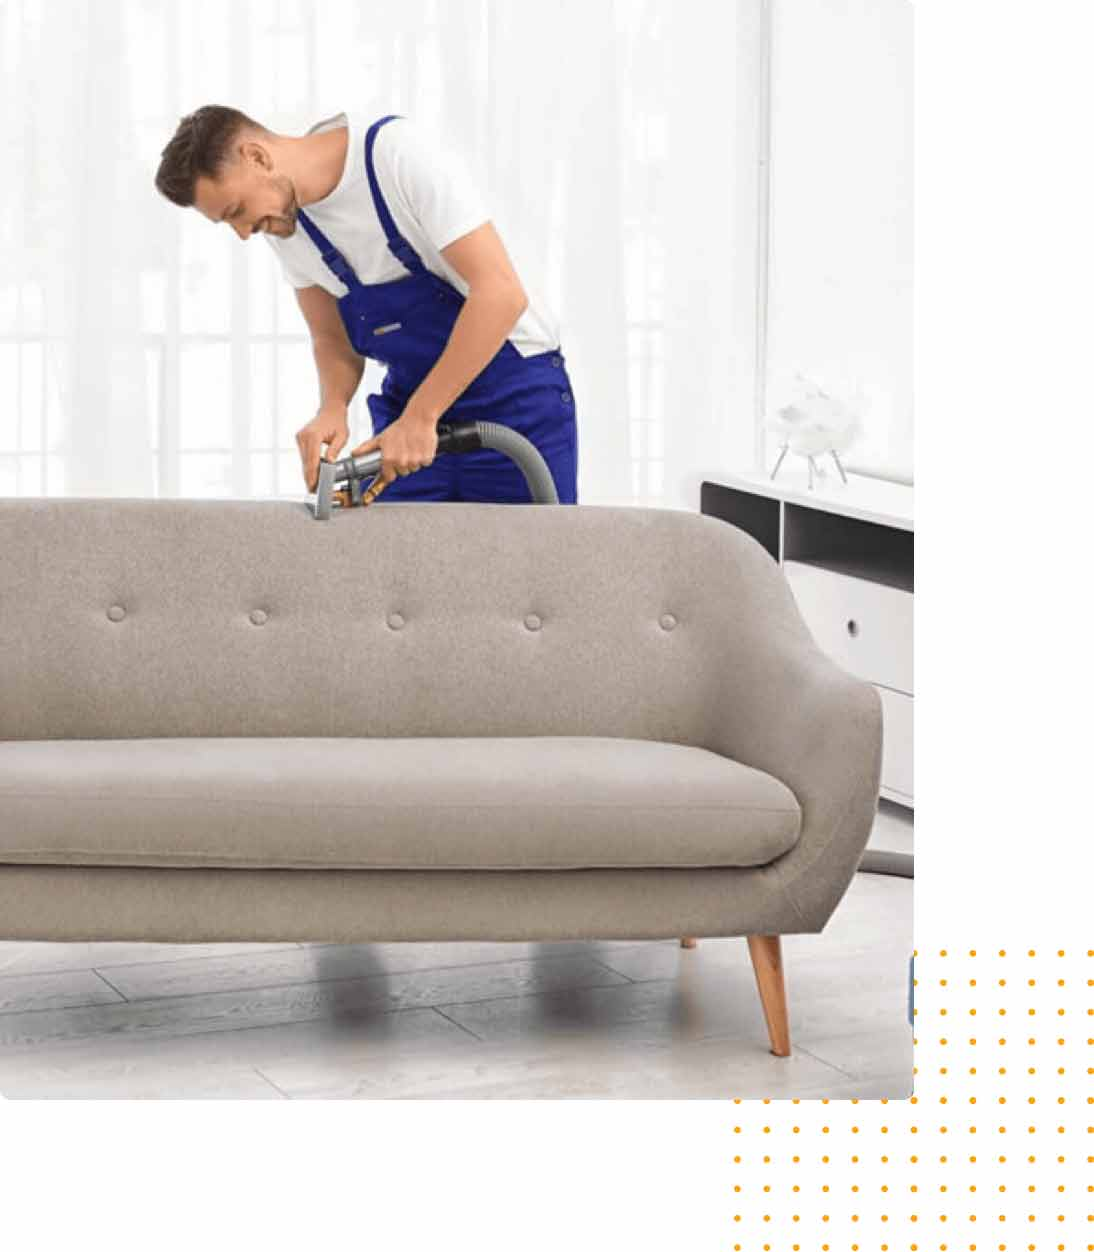 BCS-Cleaning-Services-Why-Choose-Us-Img